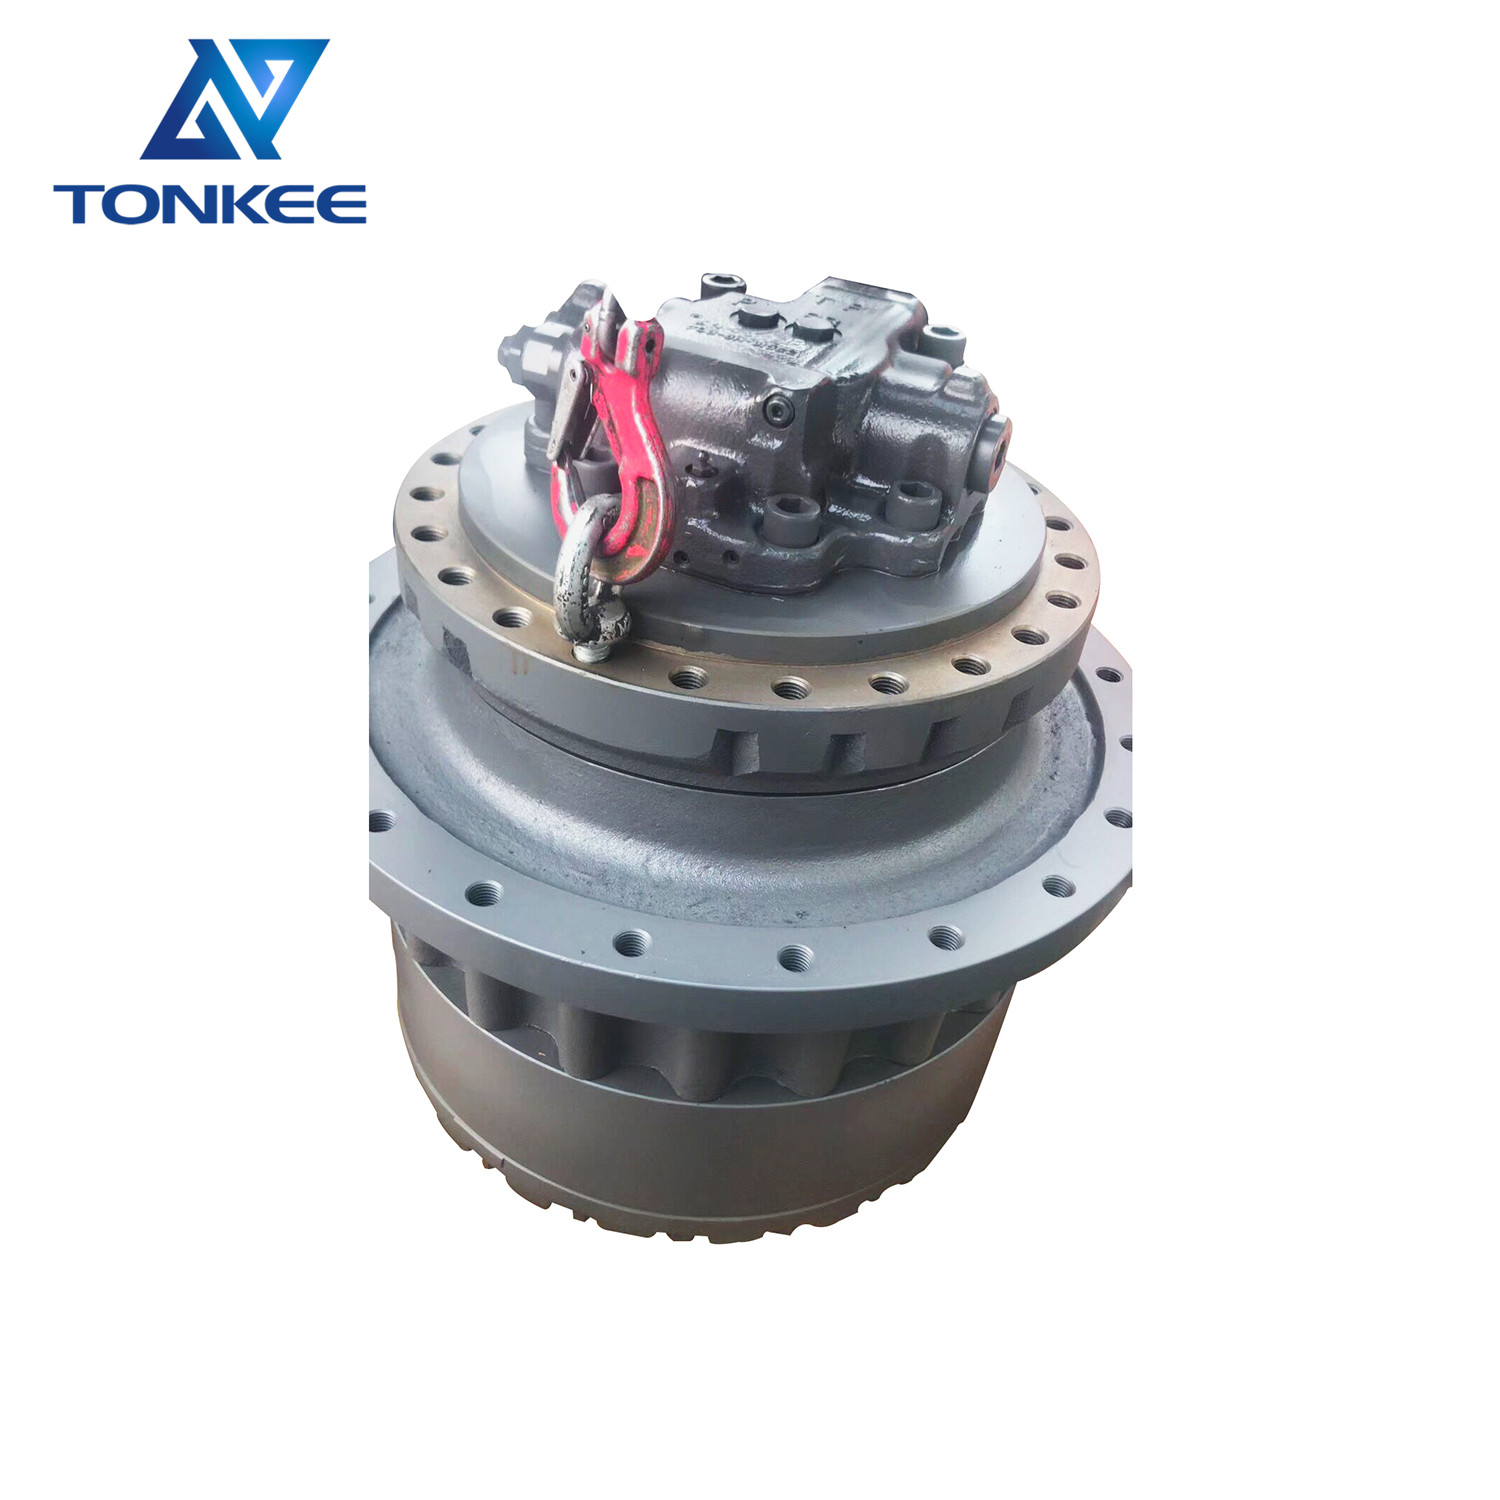 NEW 207-27-00371 207-27-00370 207-27-00260 final drive assembly PC300-7 PC350-7 PC360-7 excavator travel motor assy